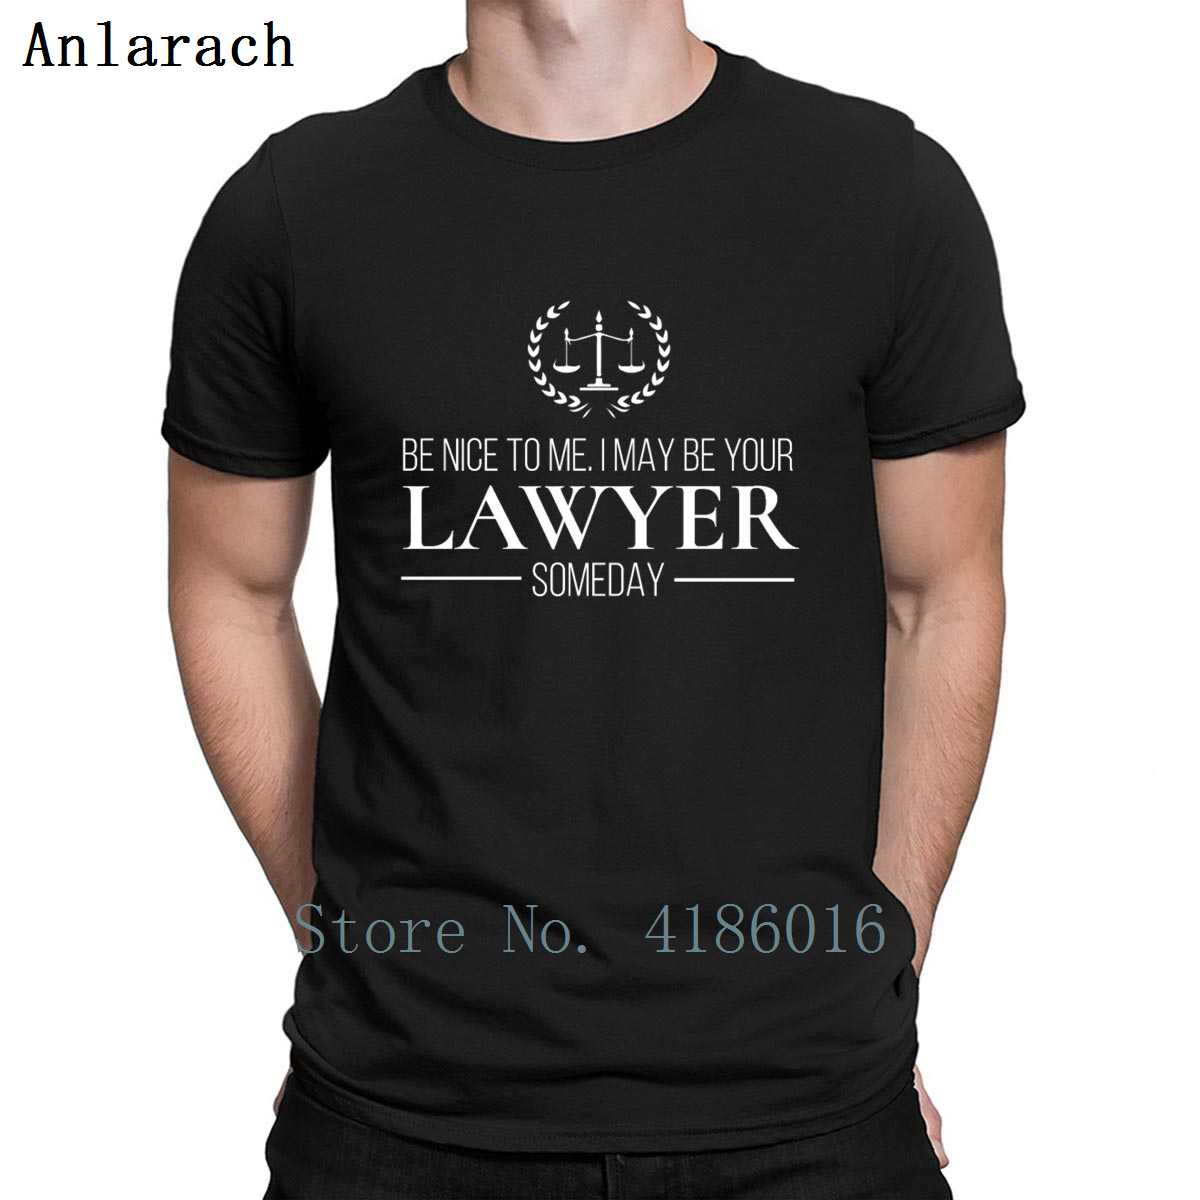 Funny Lawyer Tshirt Attorney Esquire Law School T Shirt Casual Summer Style Novelty O-Neck Fitness Tee Shirt Print Unique Shirt image